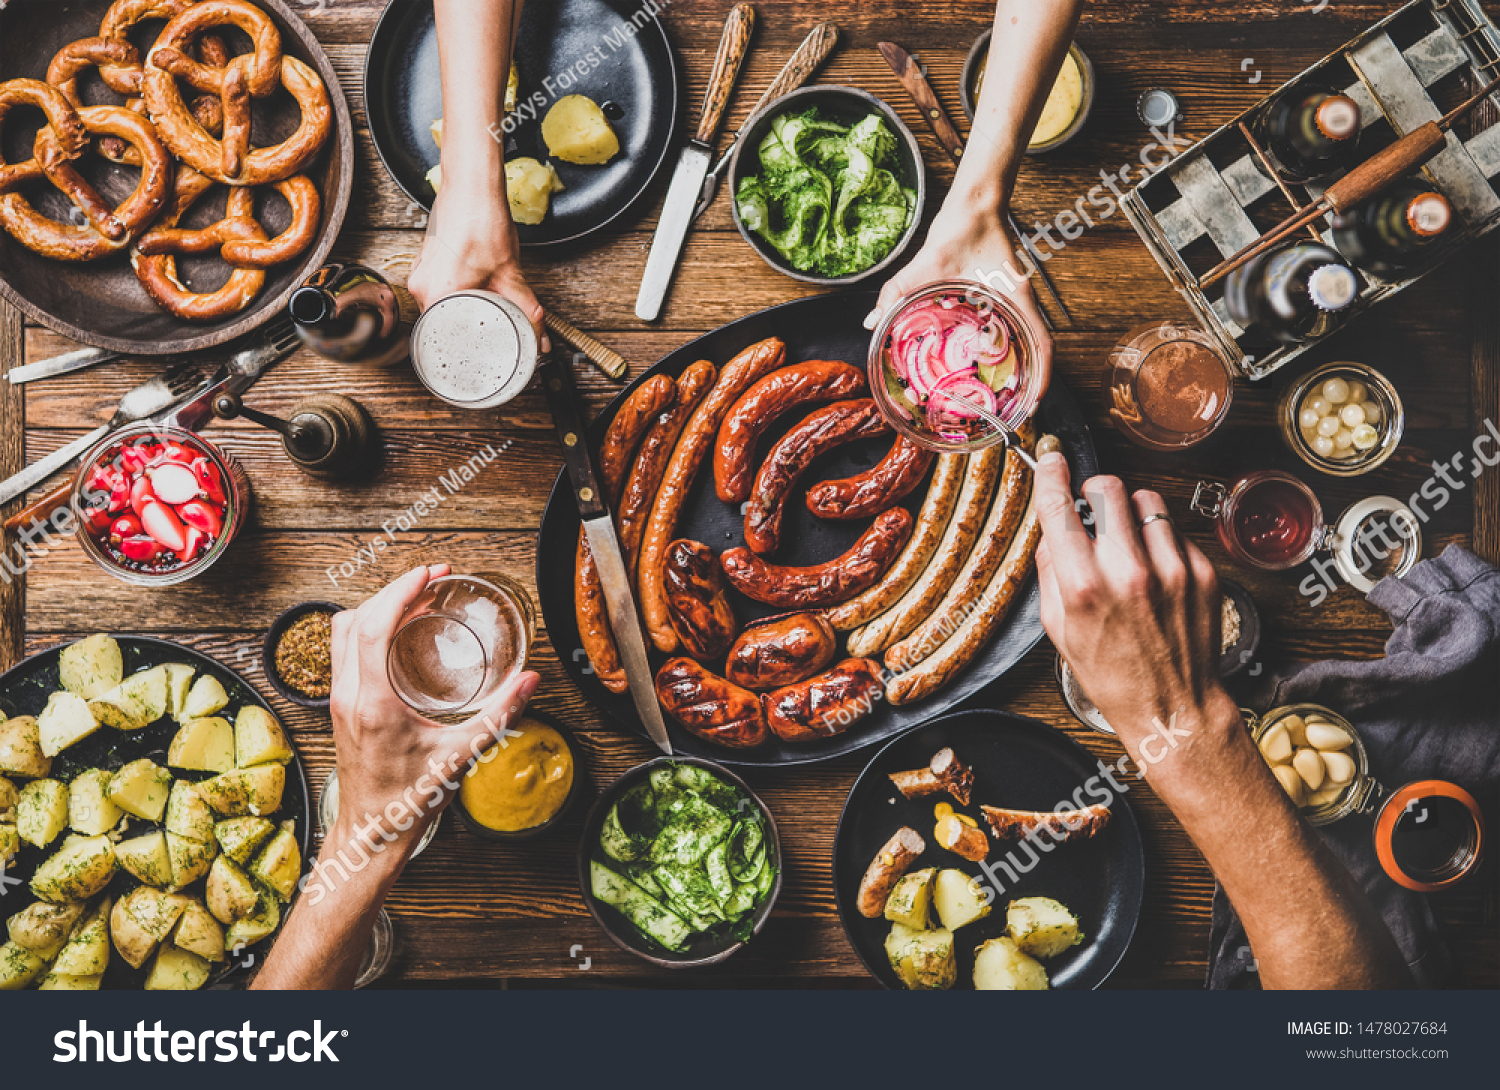 Flat-lay of Octoberfest party dinner table with grilled meat sausages, German pretzel pastry, potatoes, cucumber salad, sauces, beers and peoples hands with food over dark wooden background, top view #1478027684